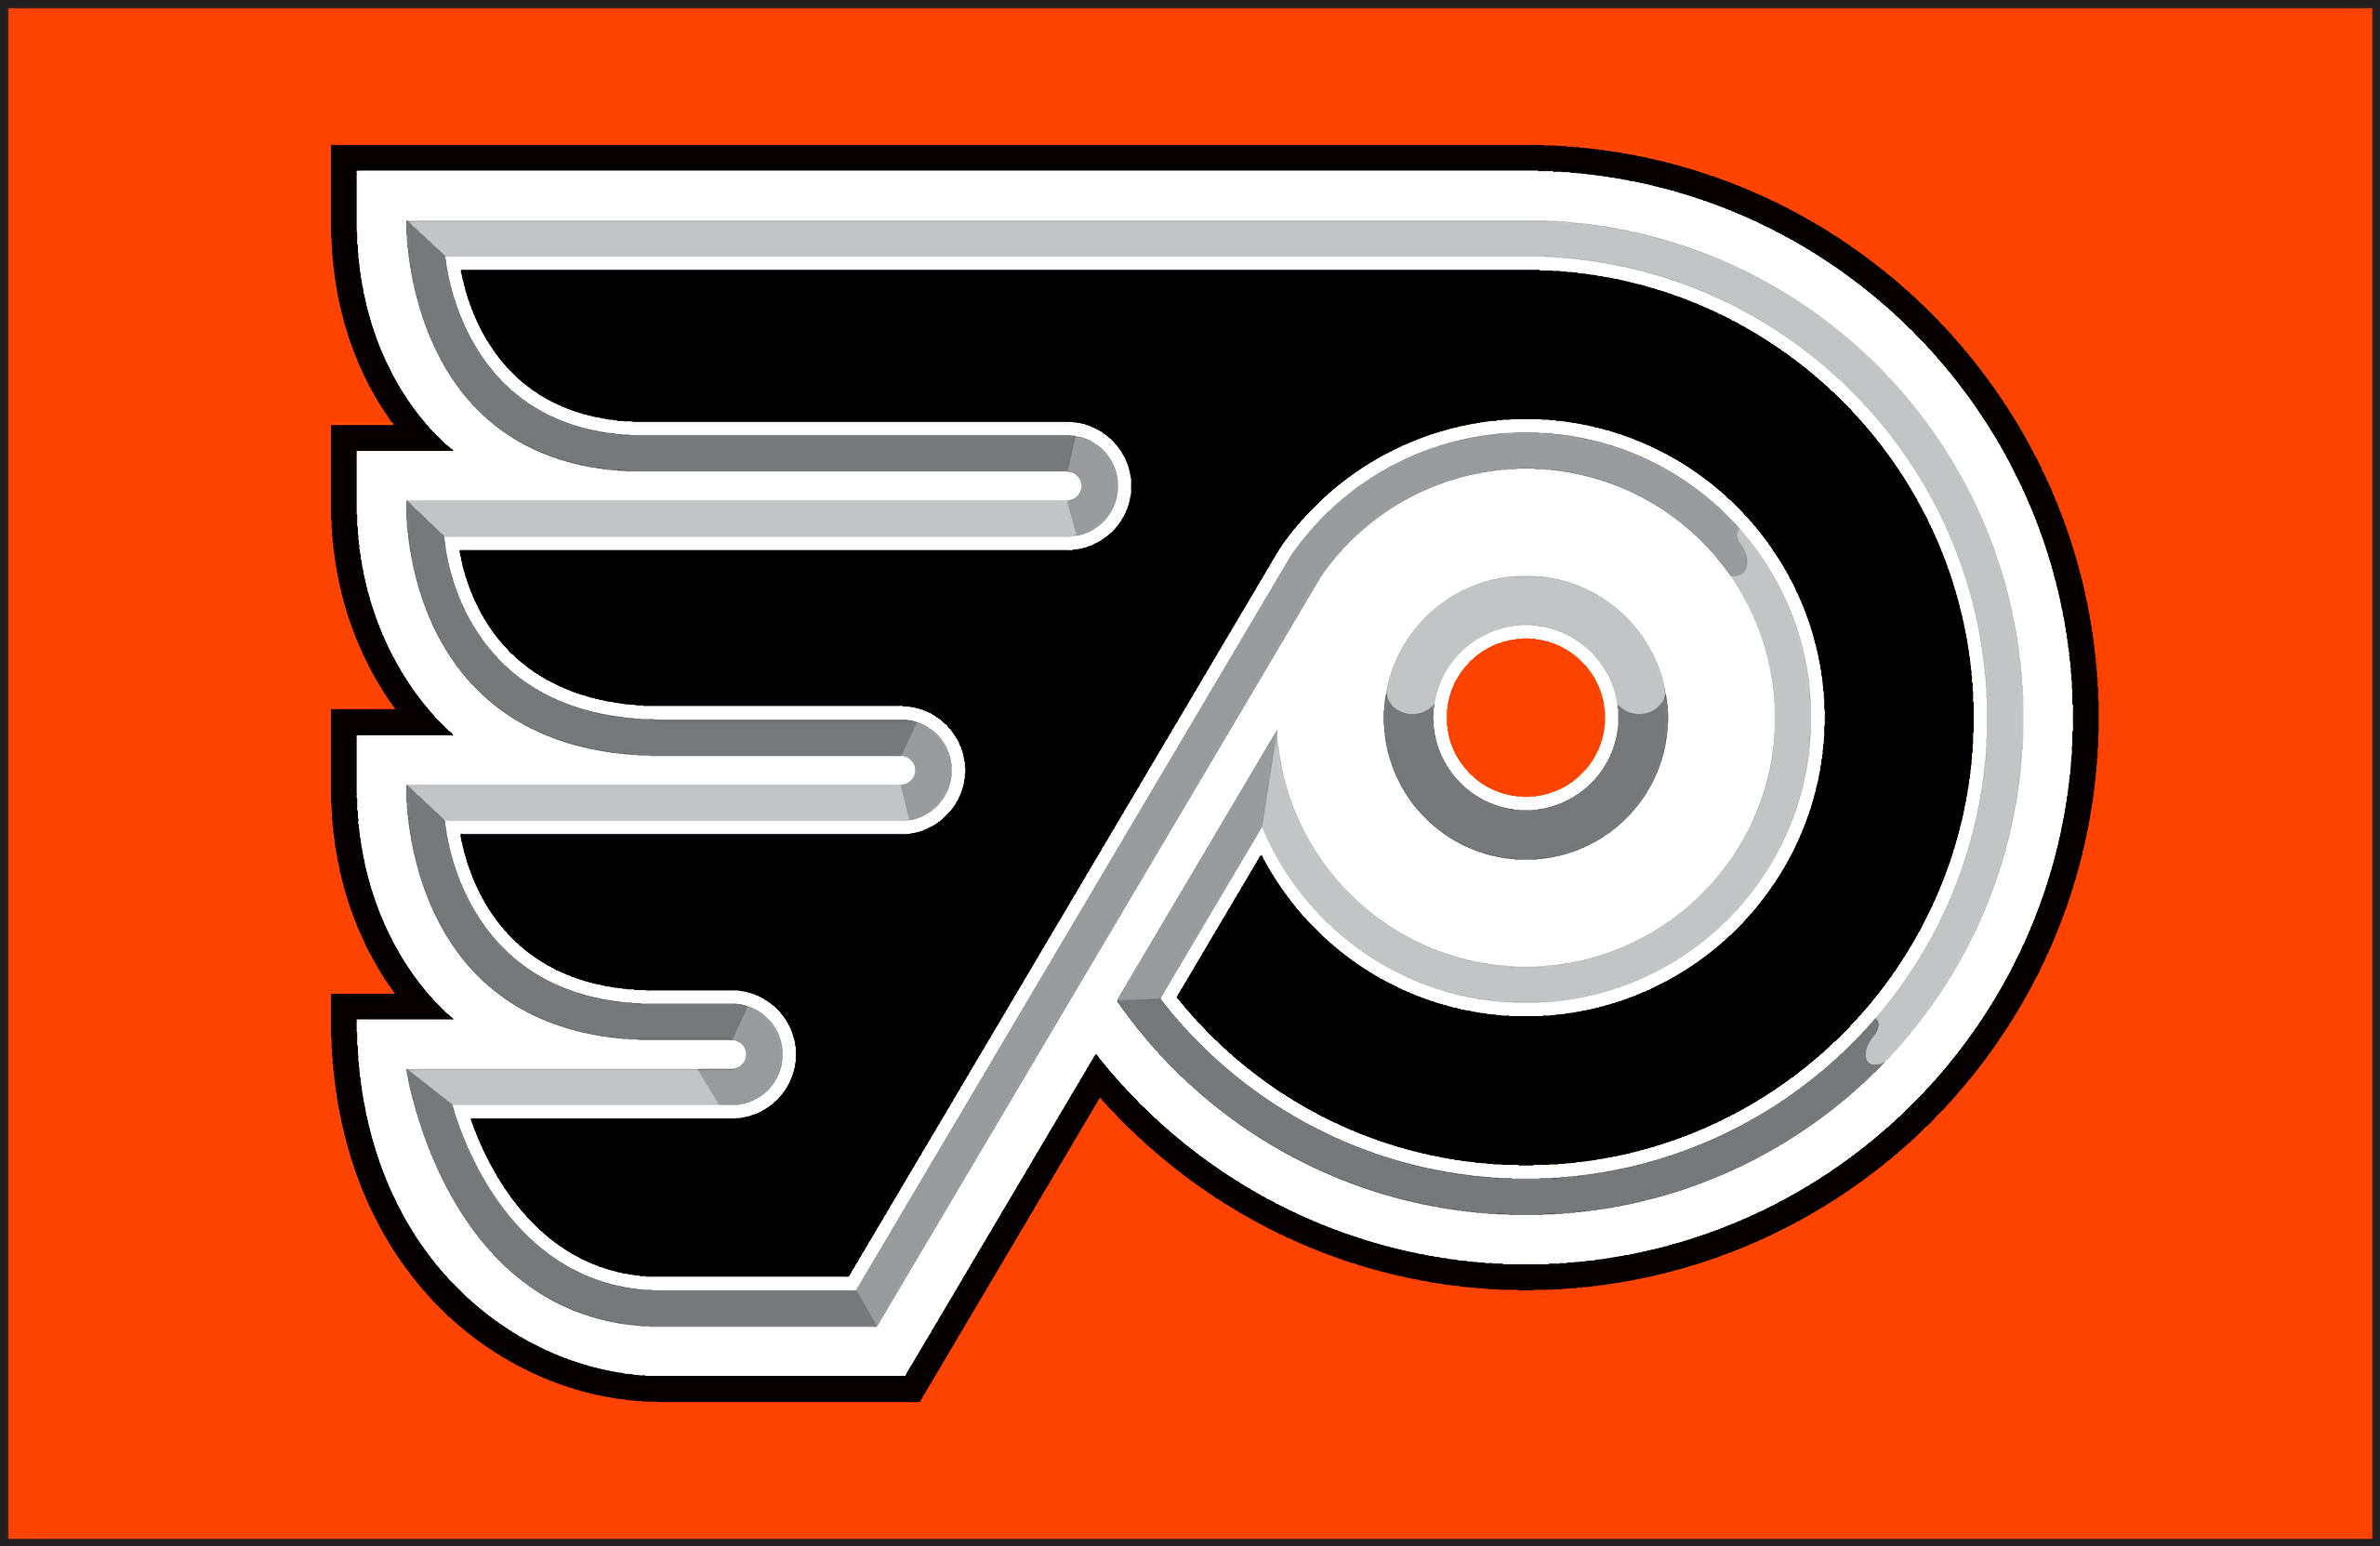 Philadelphia Flyers Full HD Wallpaper And Background Image